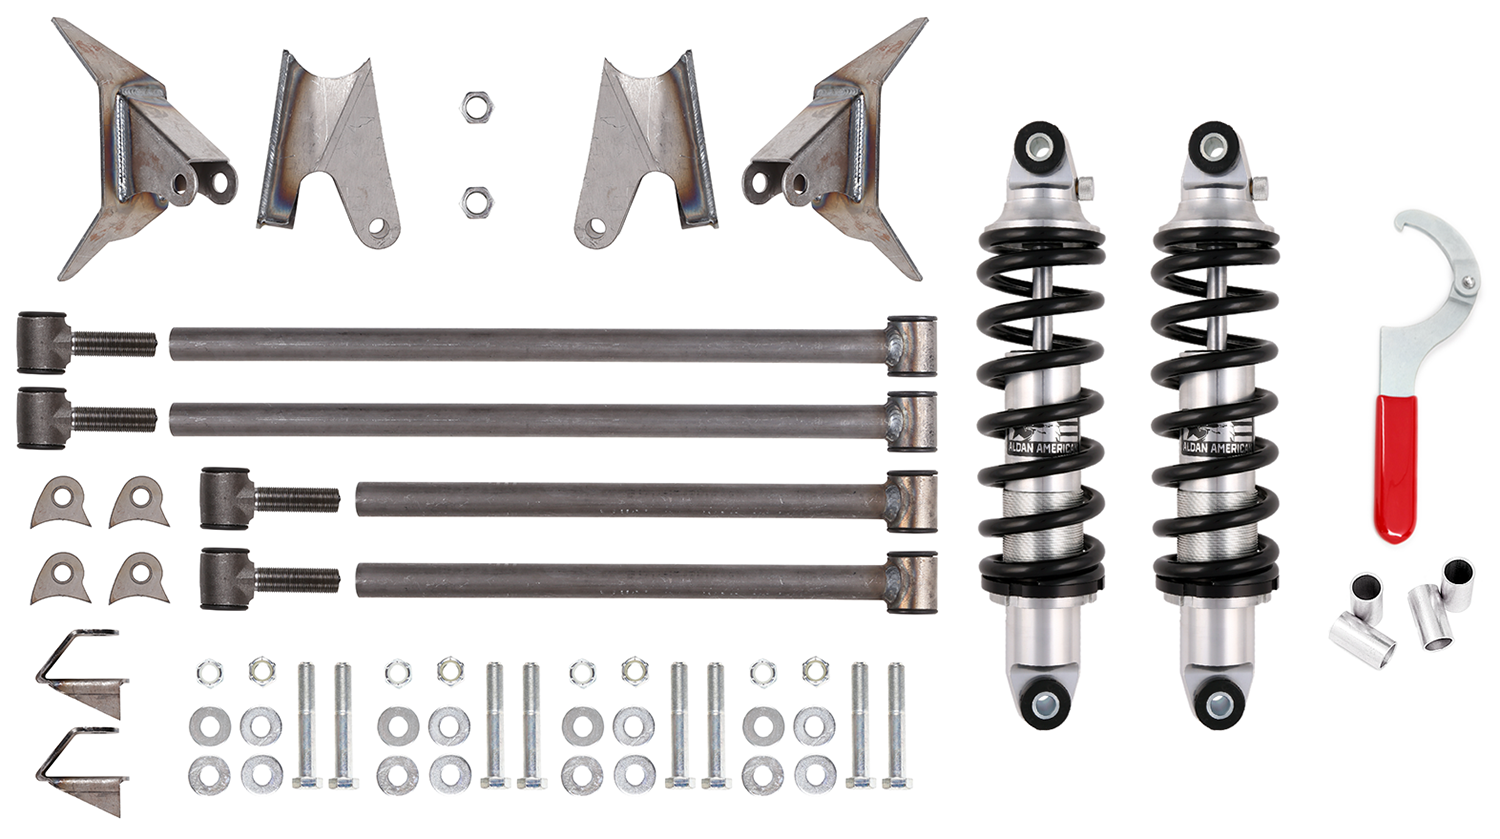 Triangulated 4-link kit with coilovers